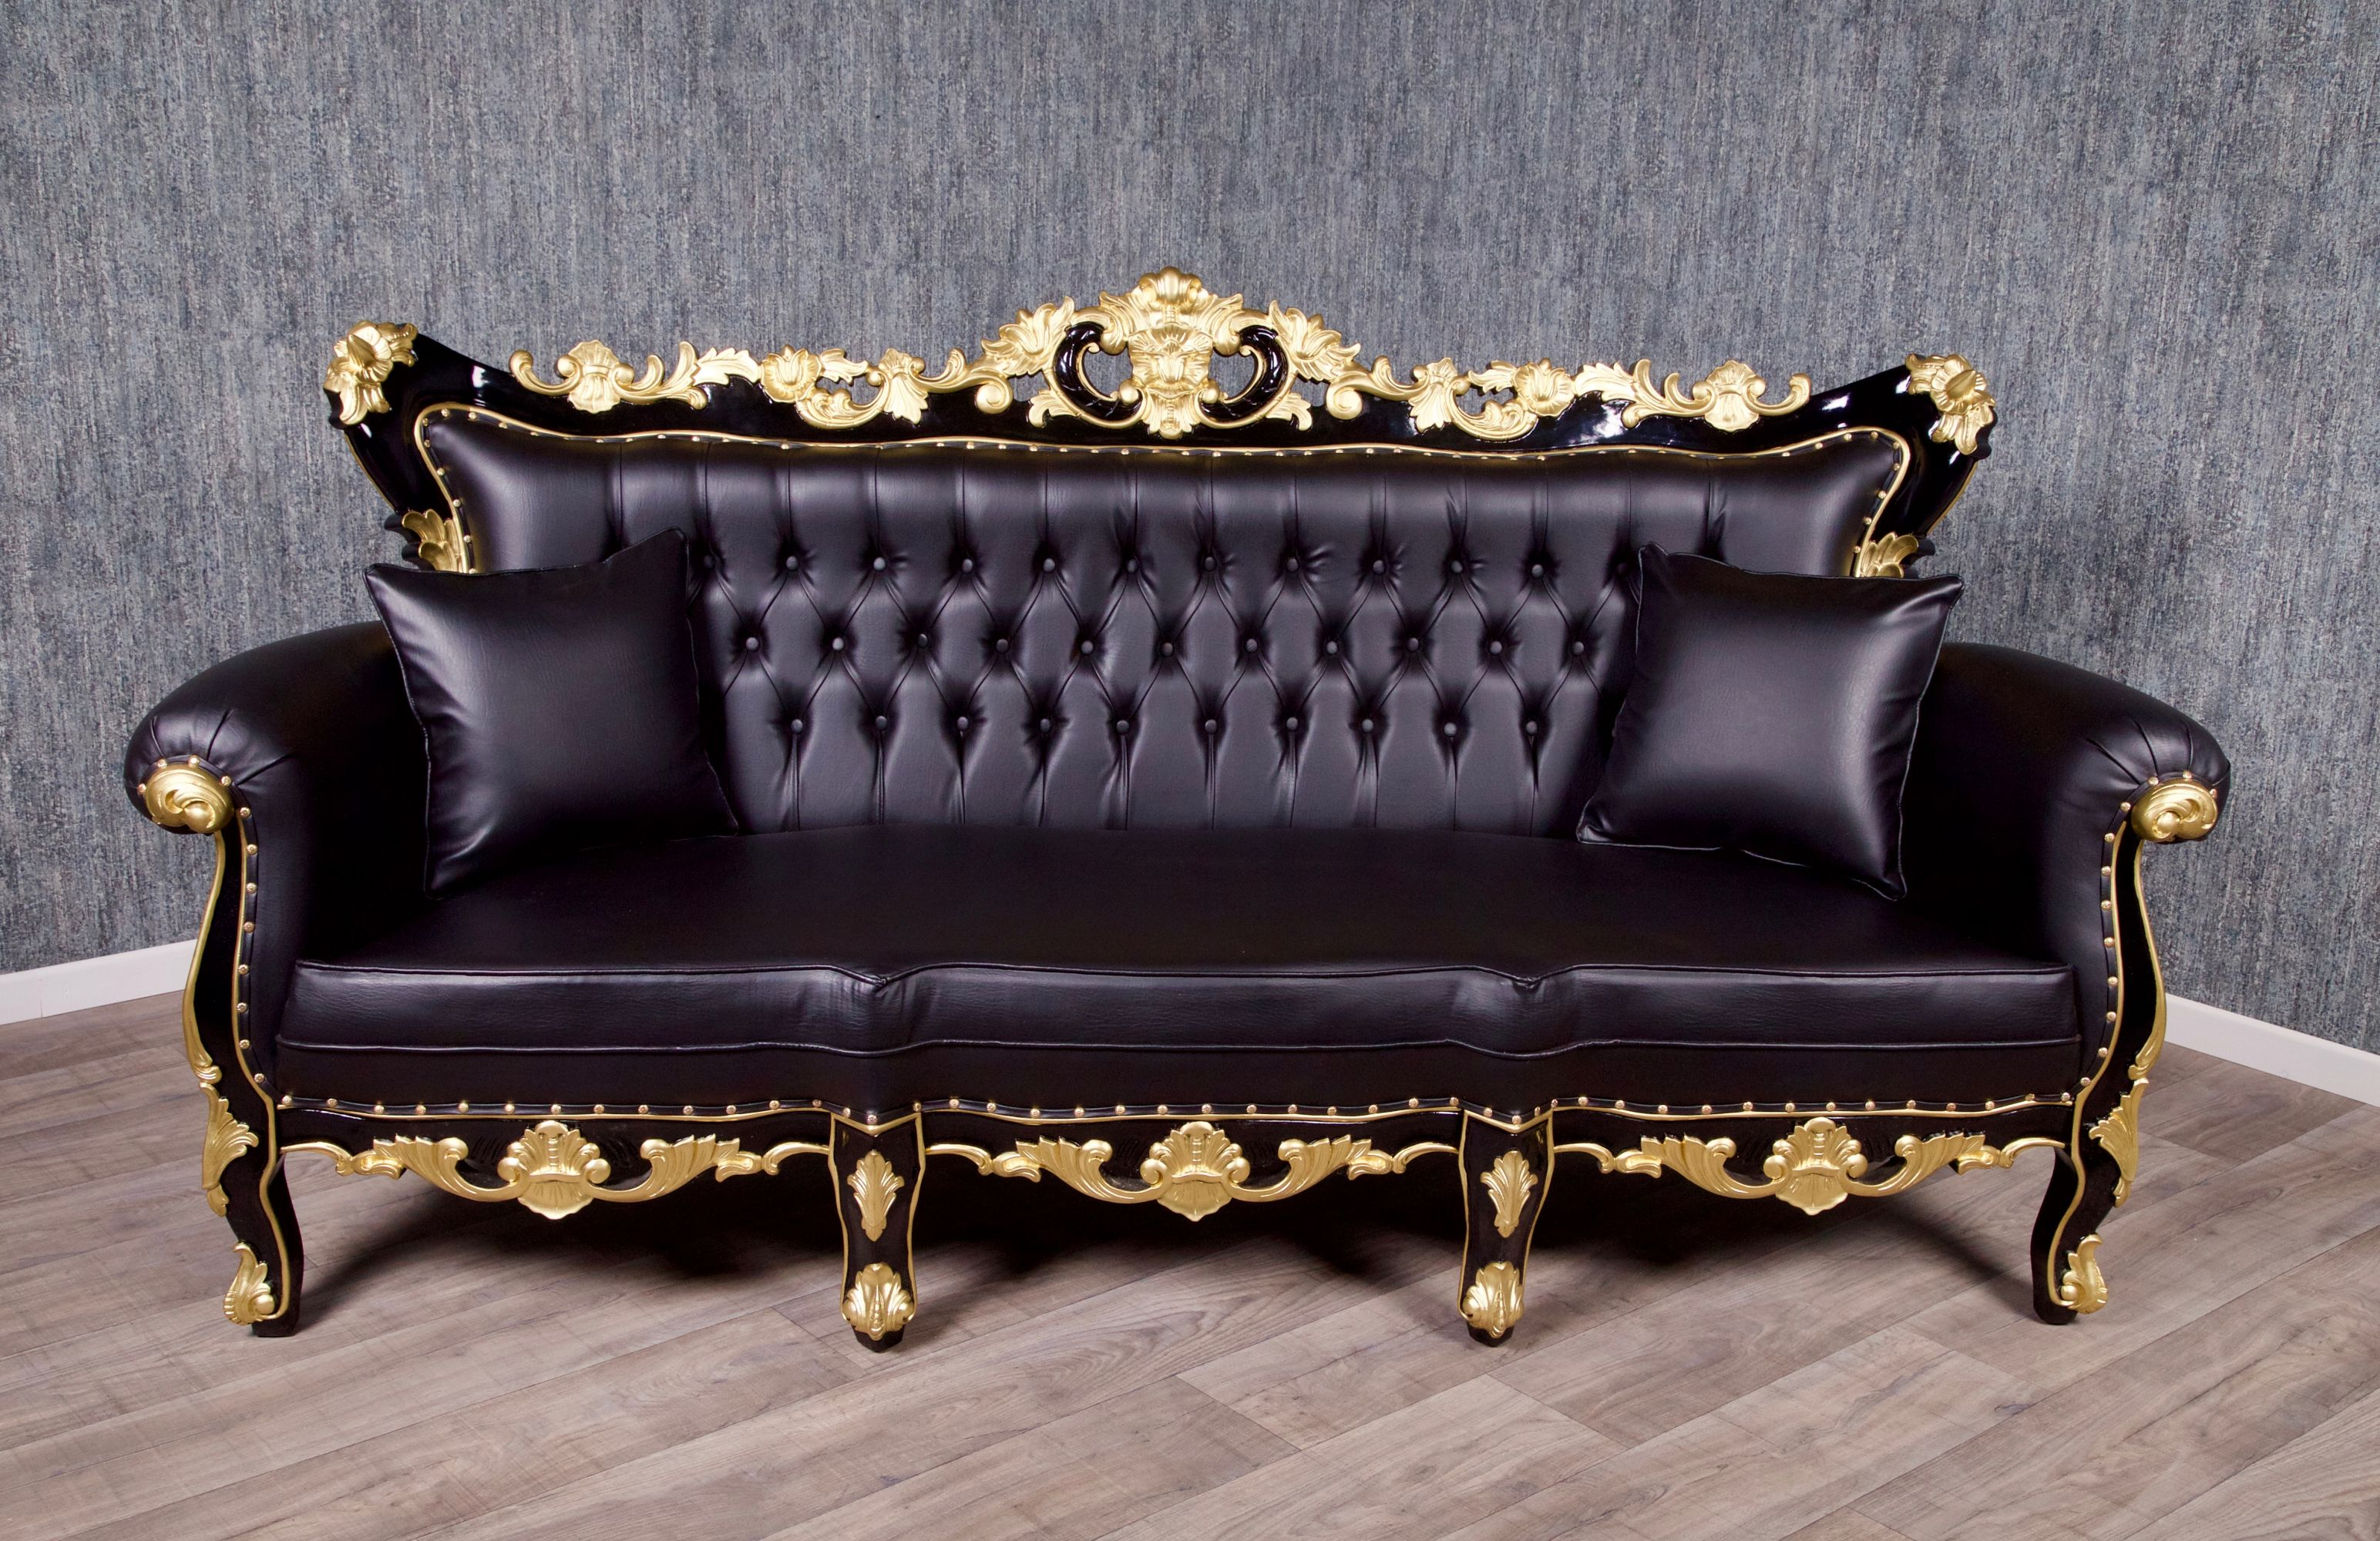 barock sofa dendrobia 3 sitzer schwarz mit gold dekor sofas sofas sessel chaiselongue. Black Bedroom Furniture Sets. Home Design Ideas